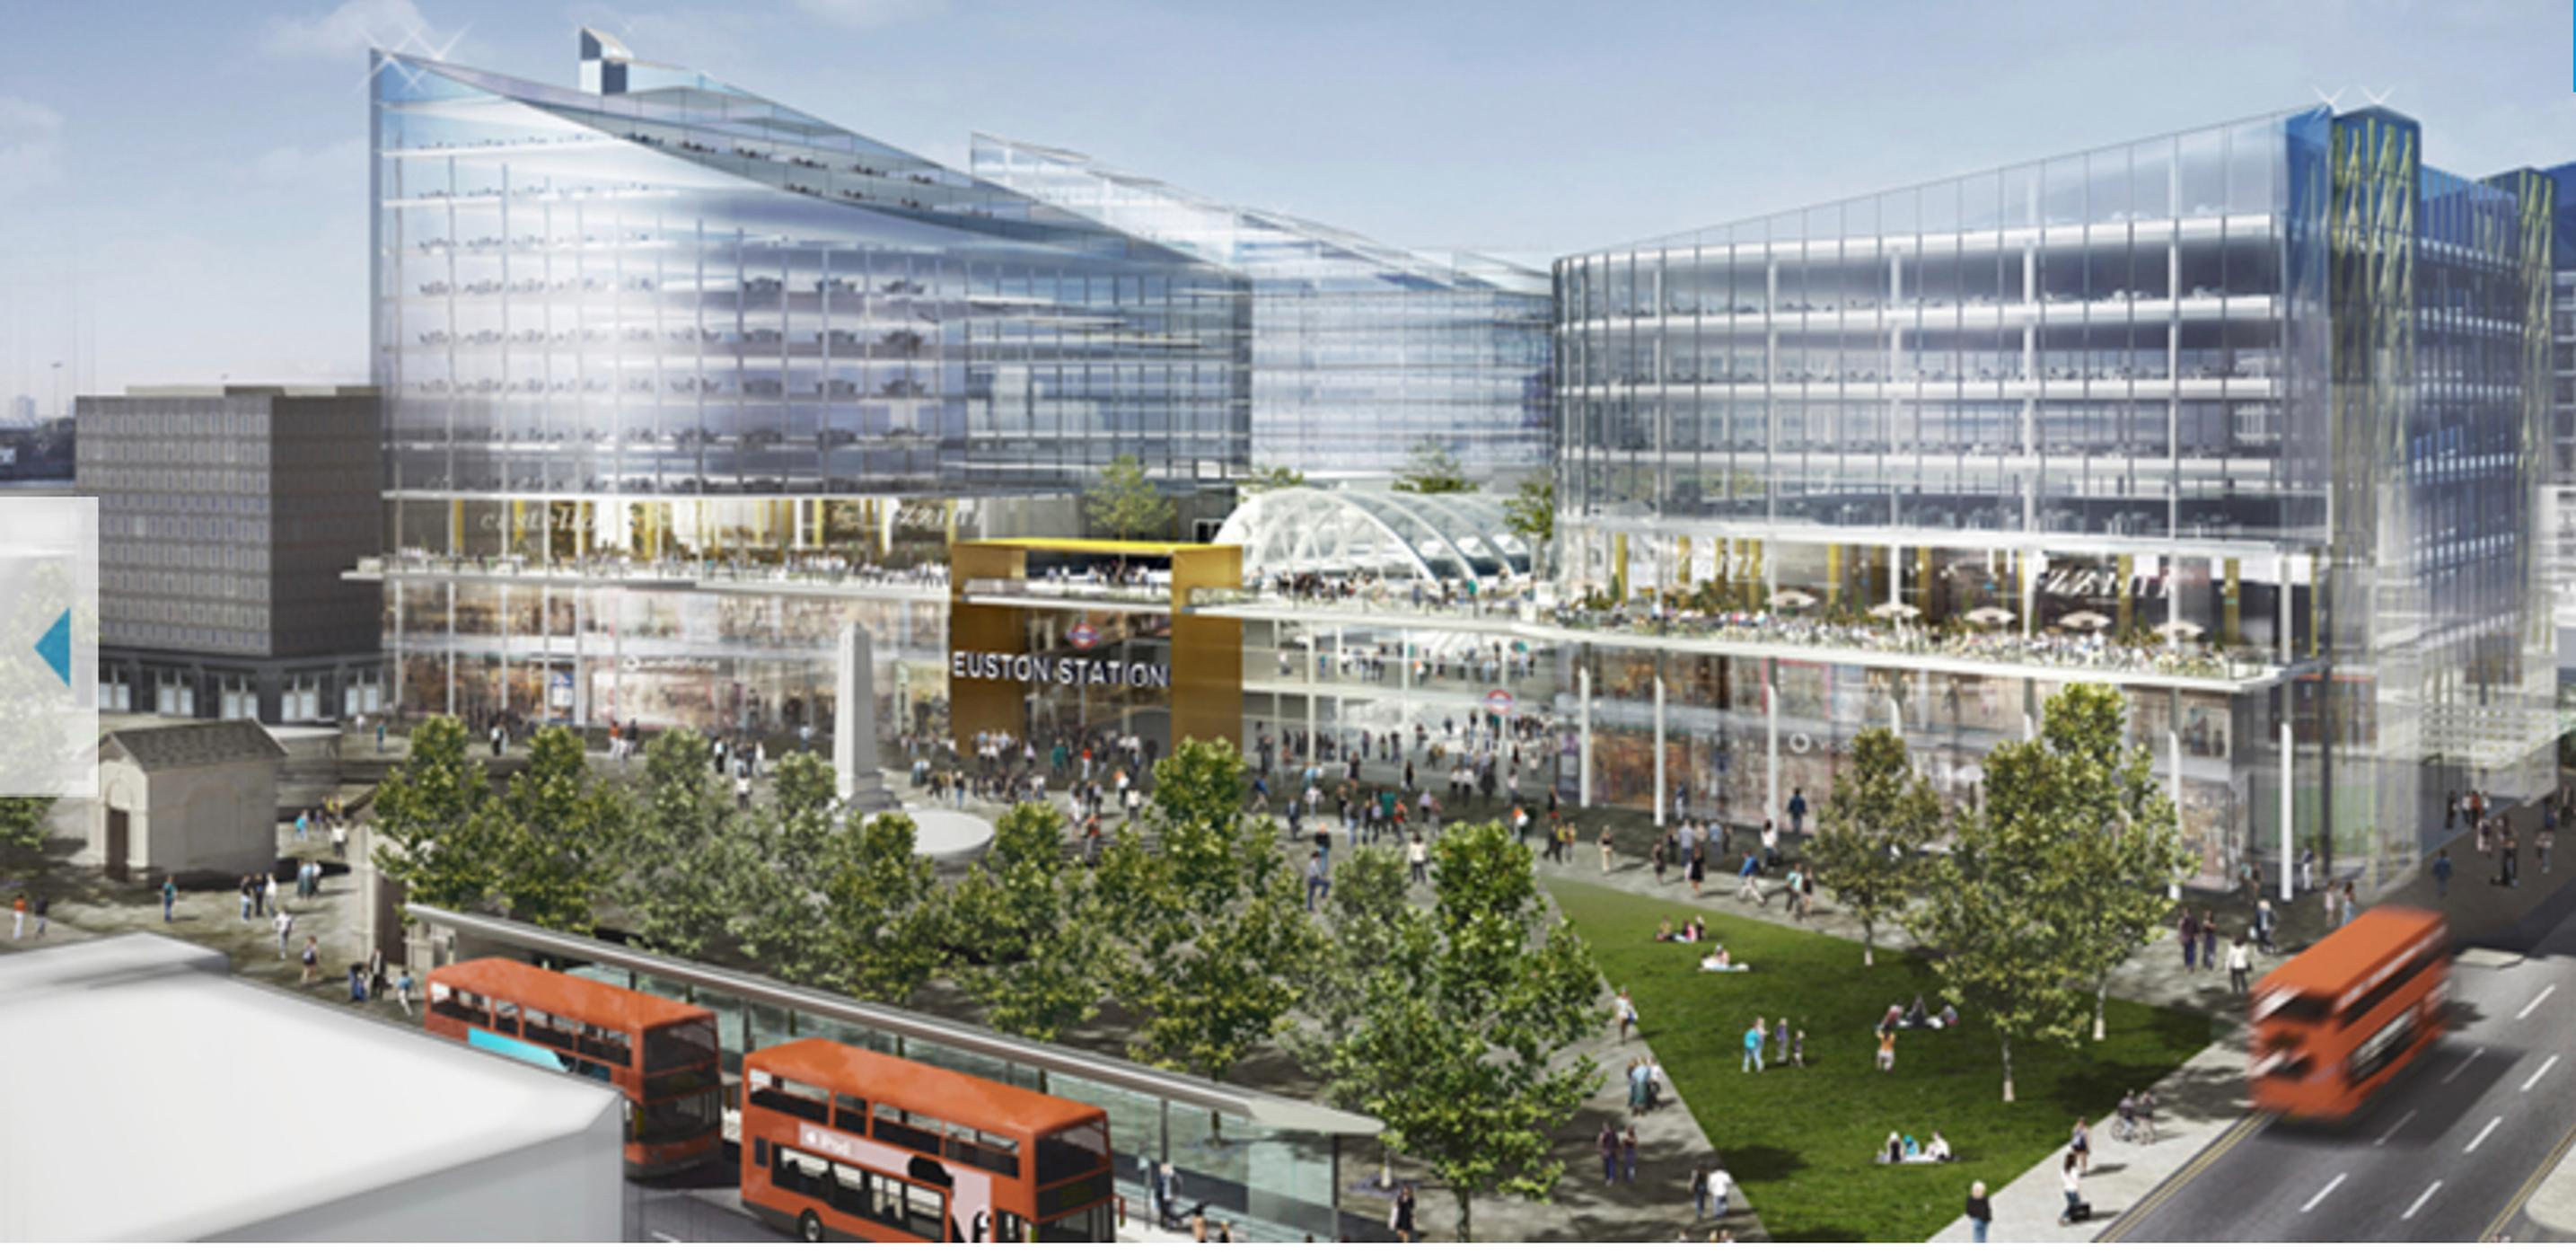 Designs for over-development at Euston Station by SNC Lavalin Atkins